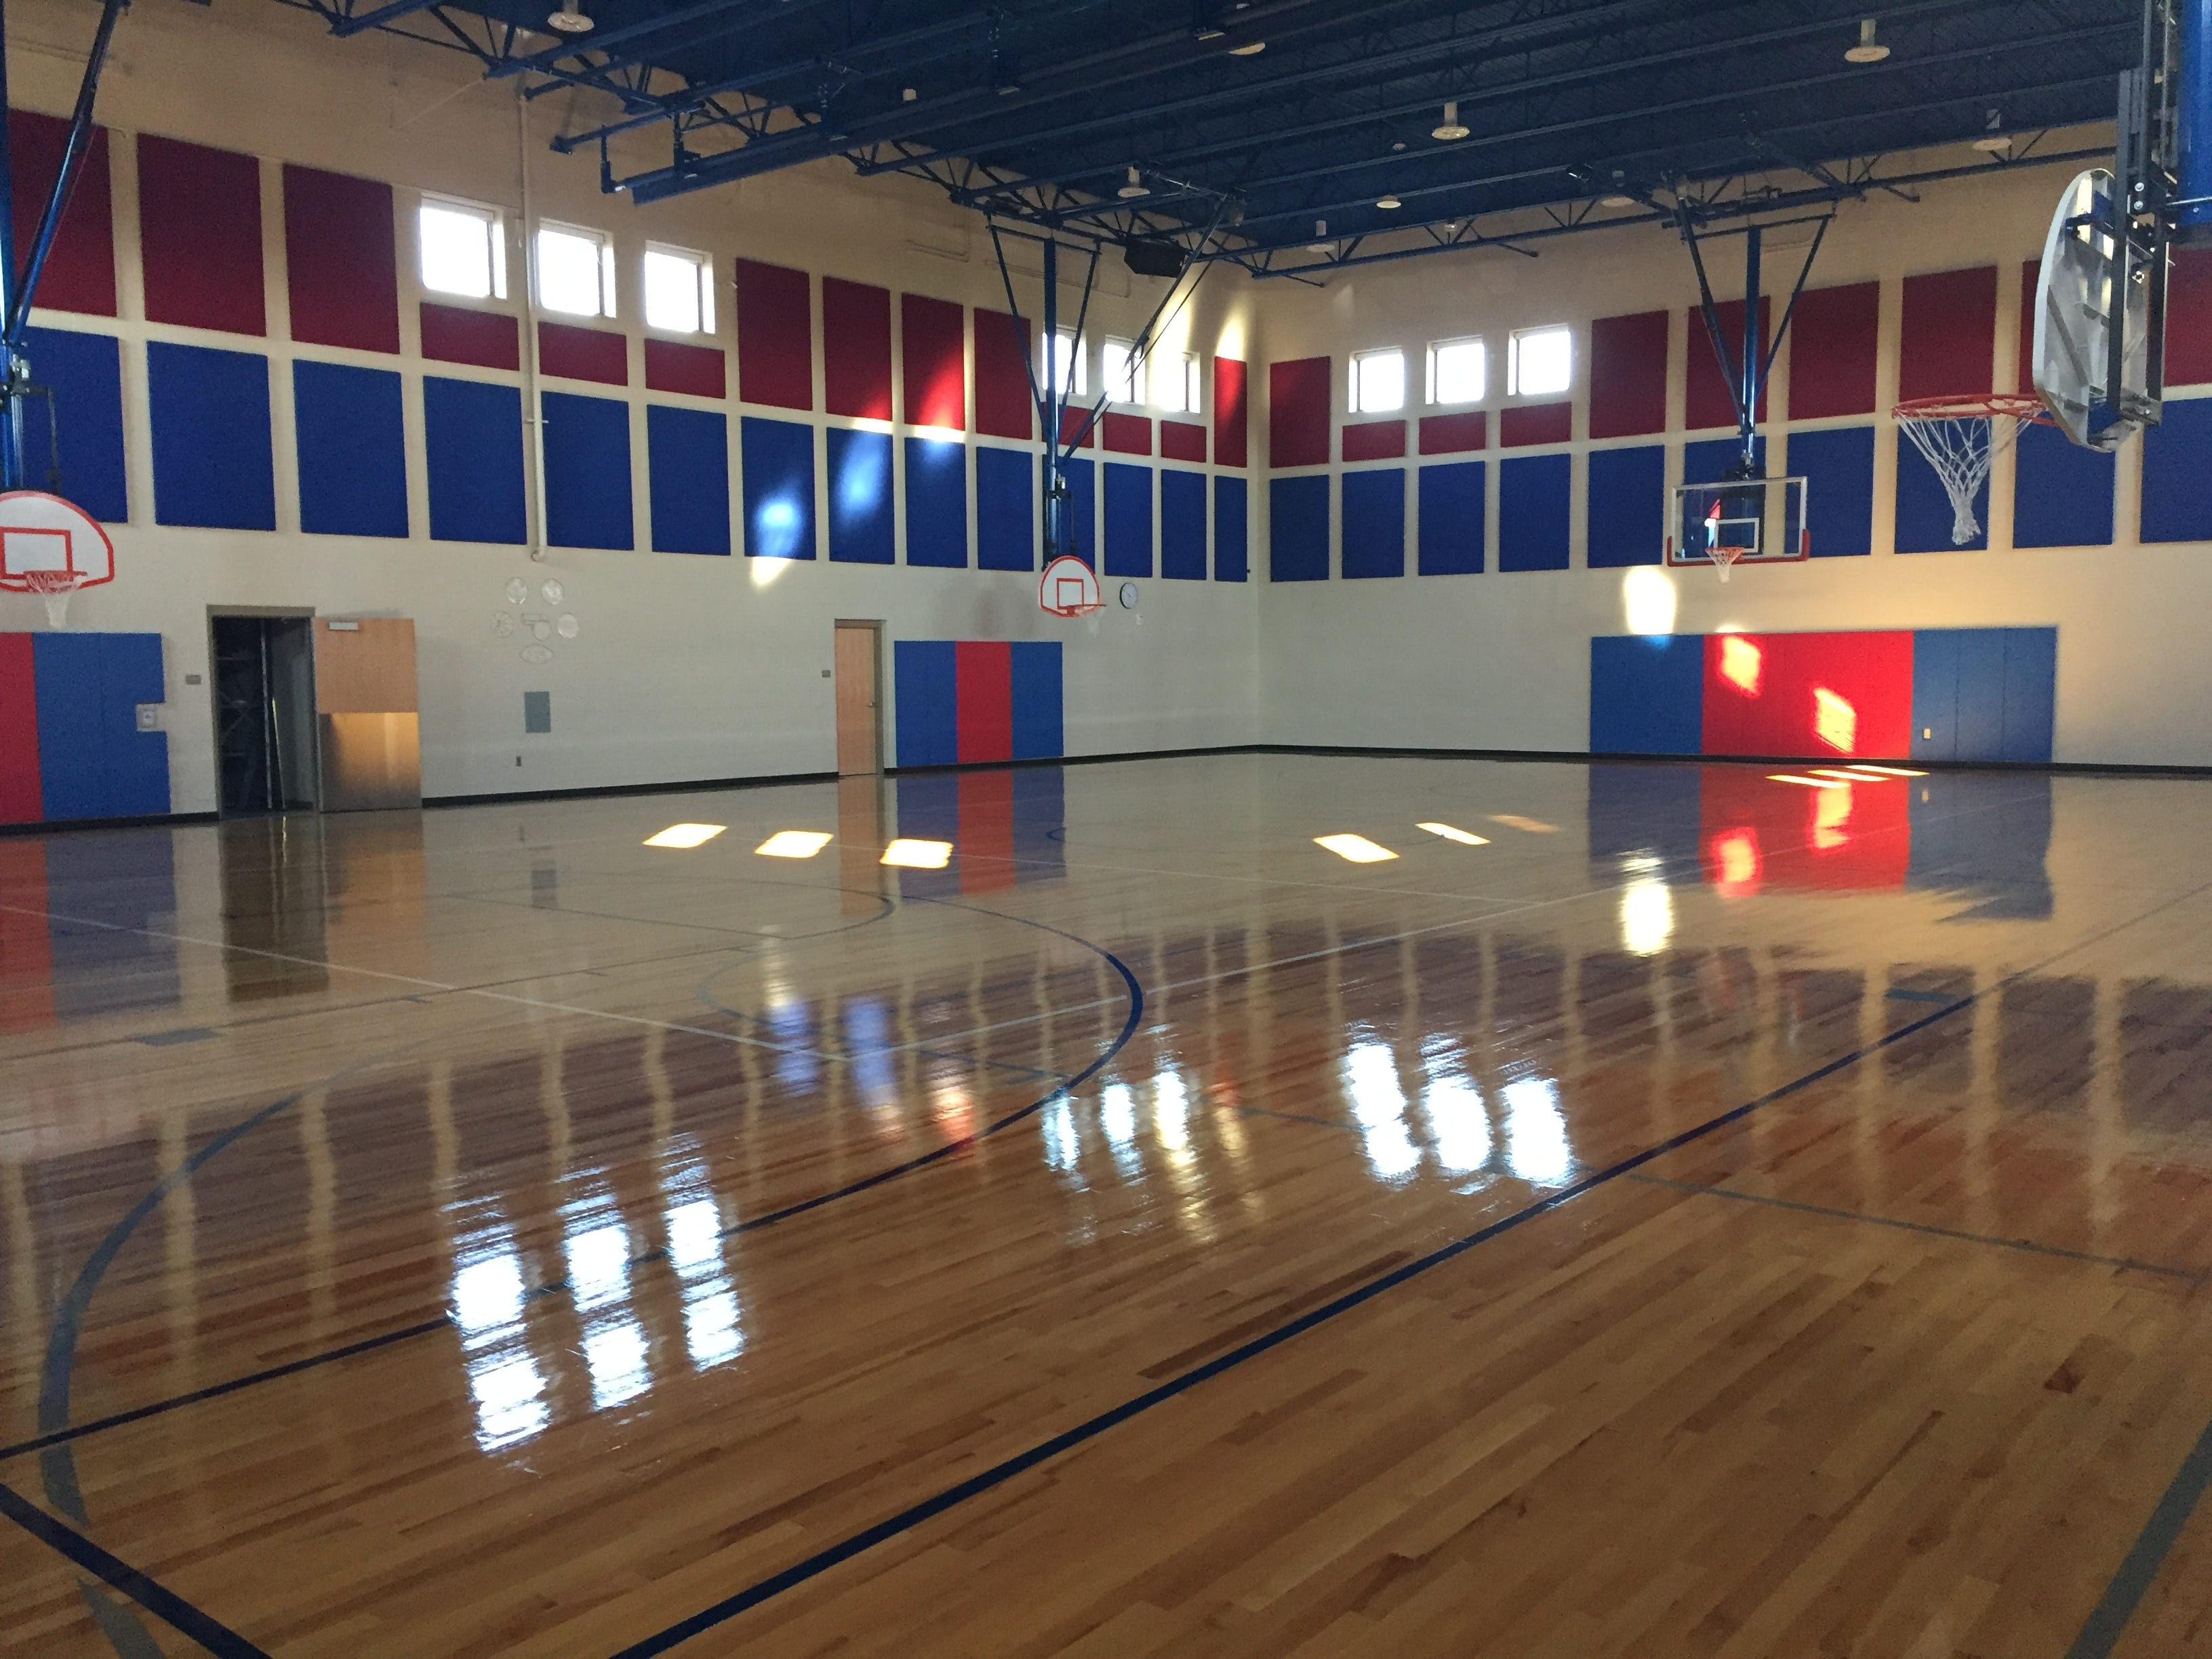 The gymnasium in Lebanon School District's new Northwest Elementary School Aug. 23, 2018.